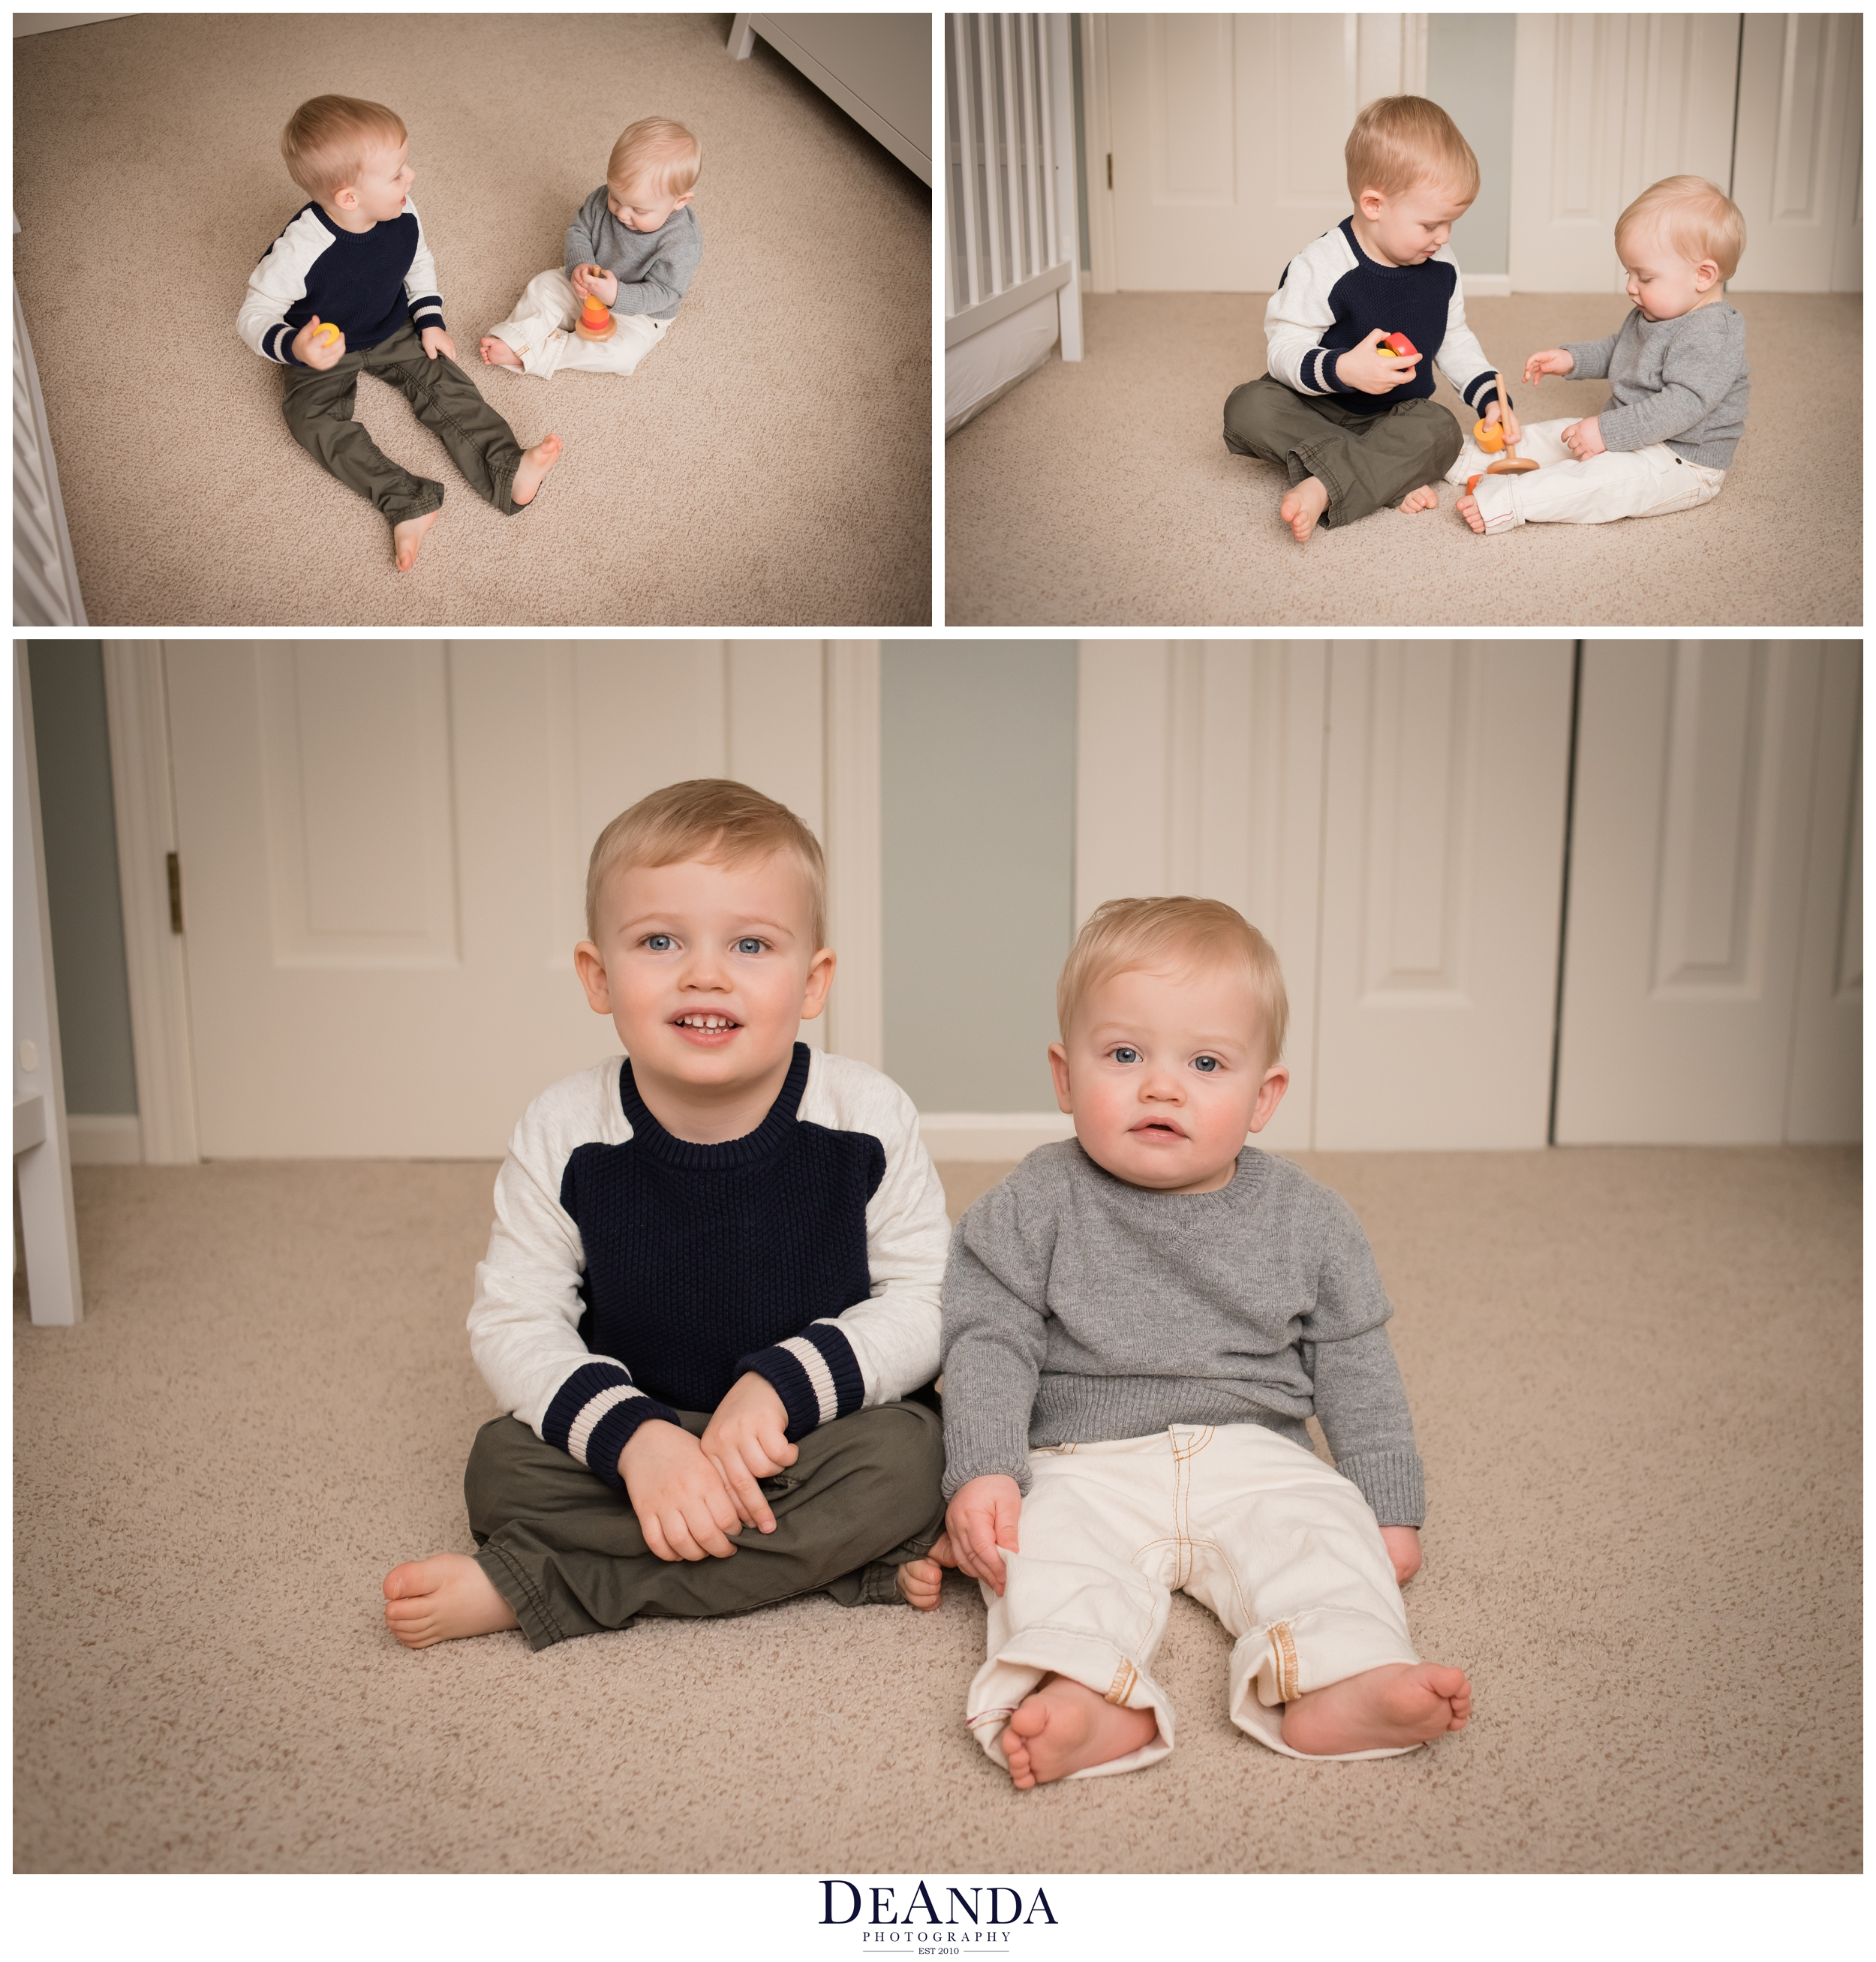 1 year old lifestyle portraits in home with brother